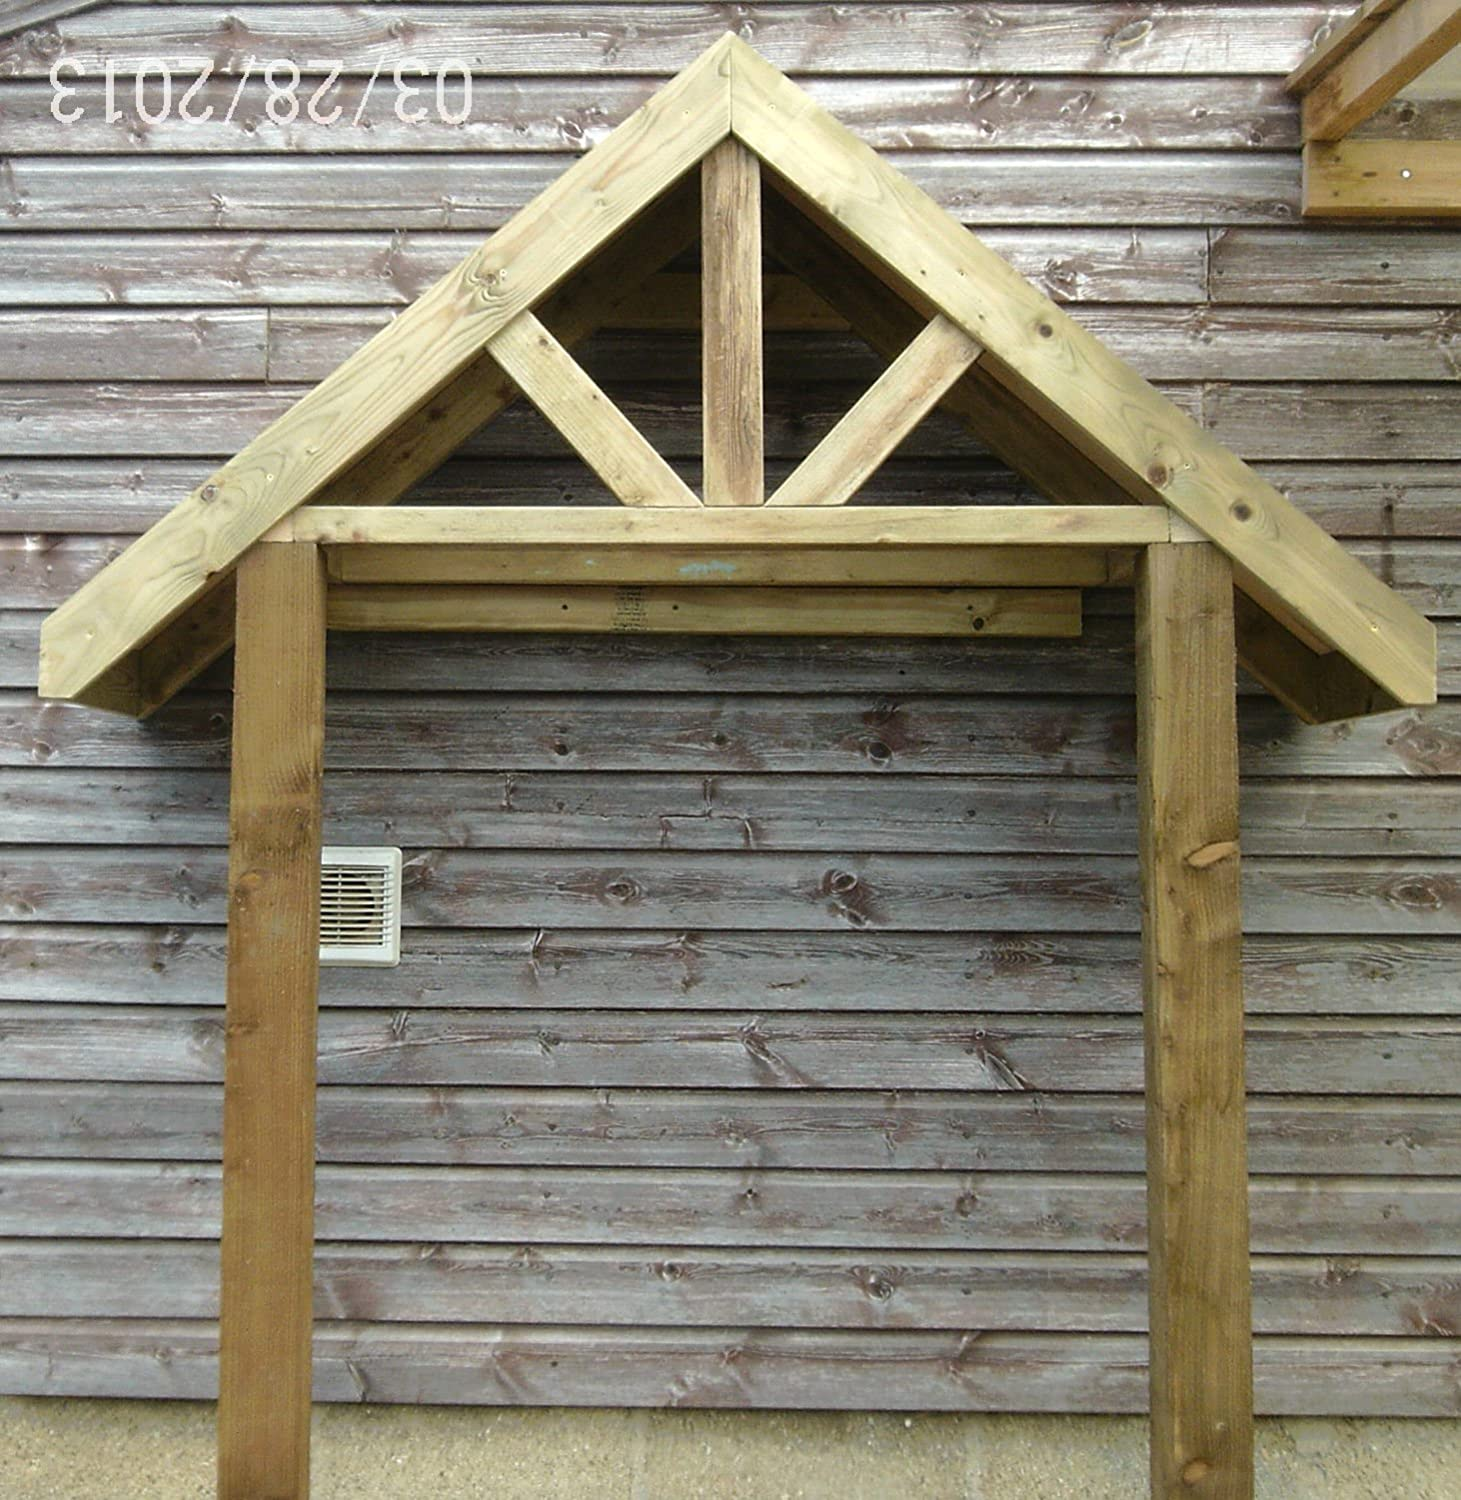 & Wooden Porch Canopy u0026 Stilts: Amazon.co.uk: Garden u0026 Outdoors